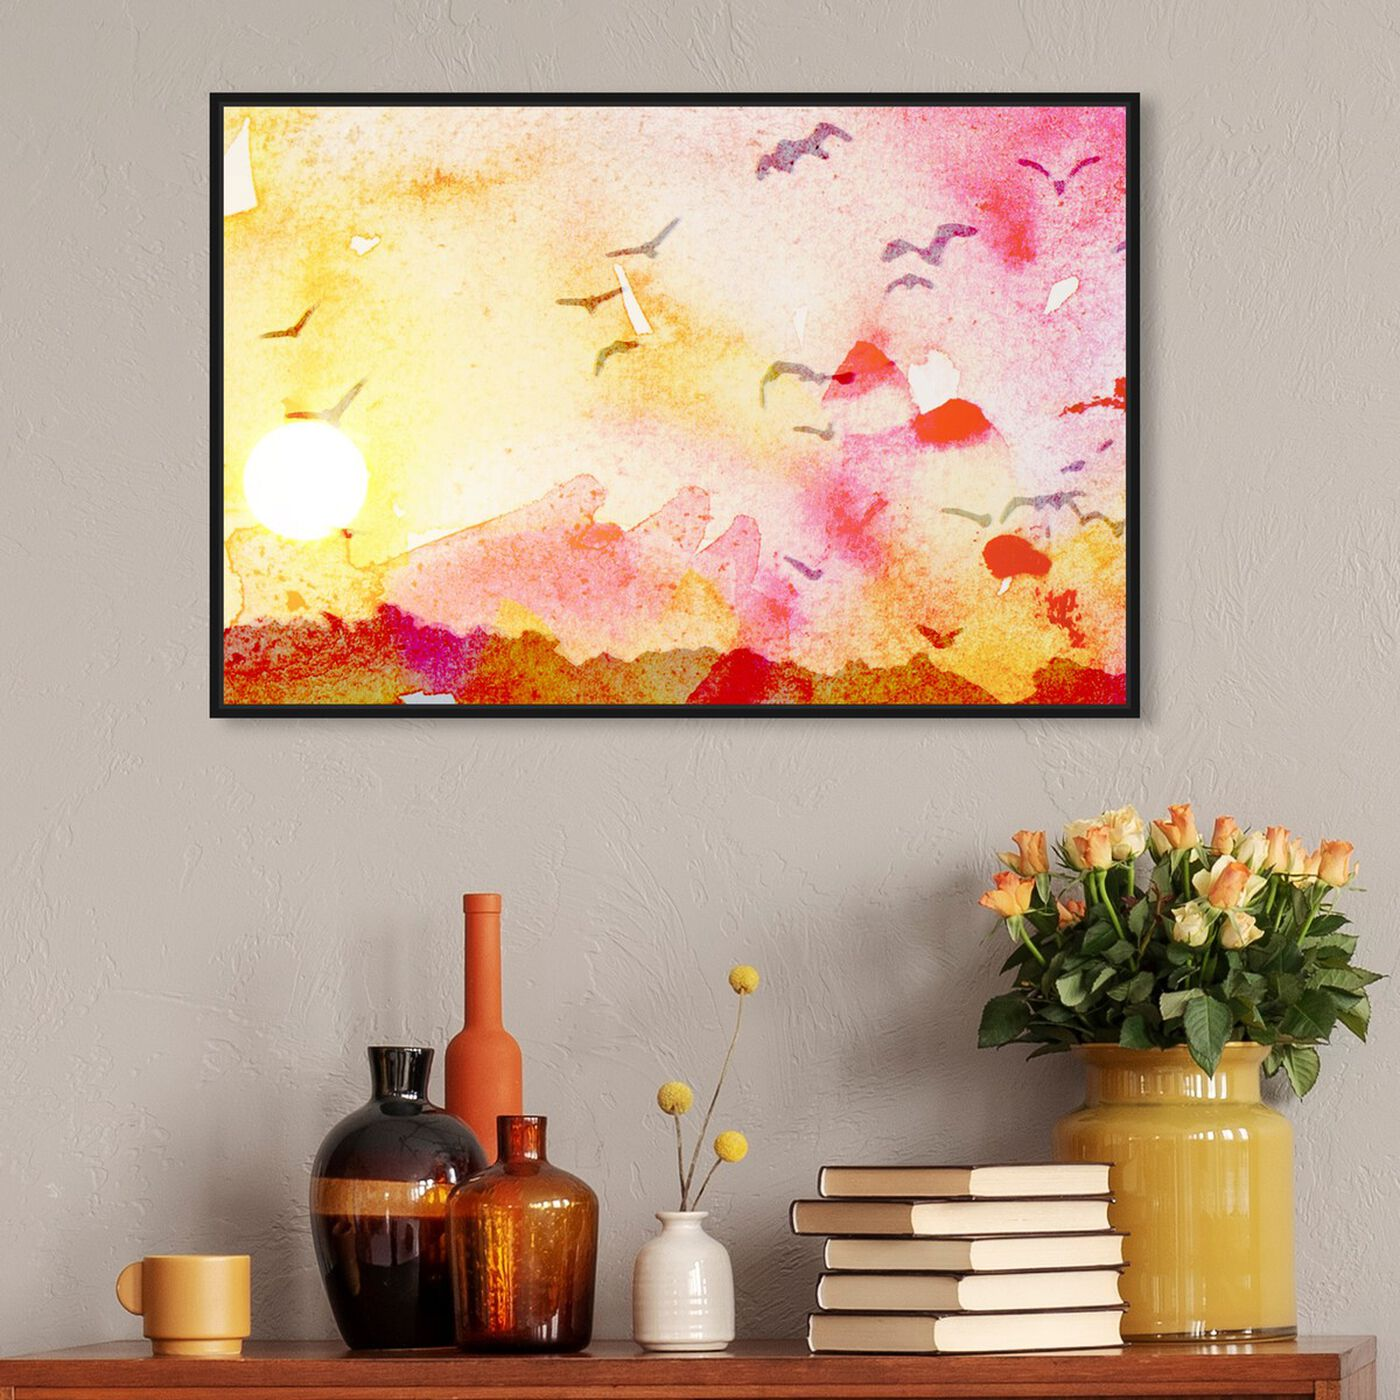 Hanging view of Estepa De California featuring abstract and watercolor art.